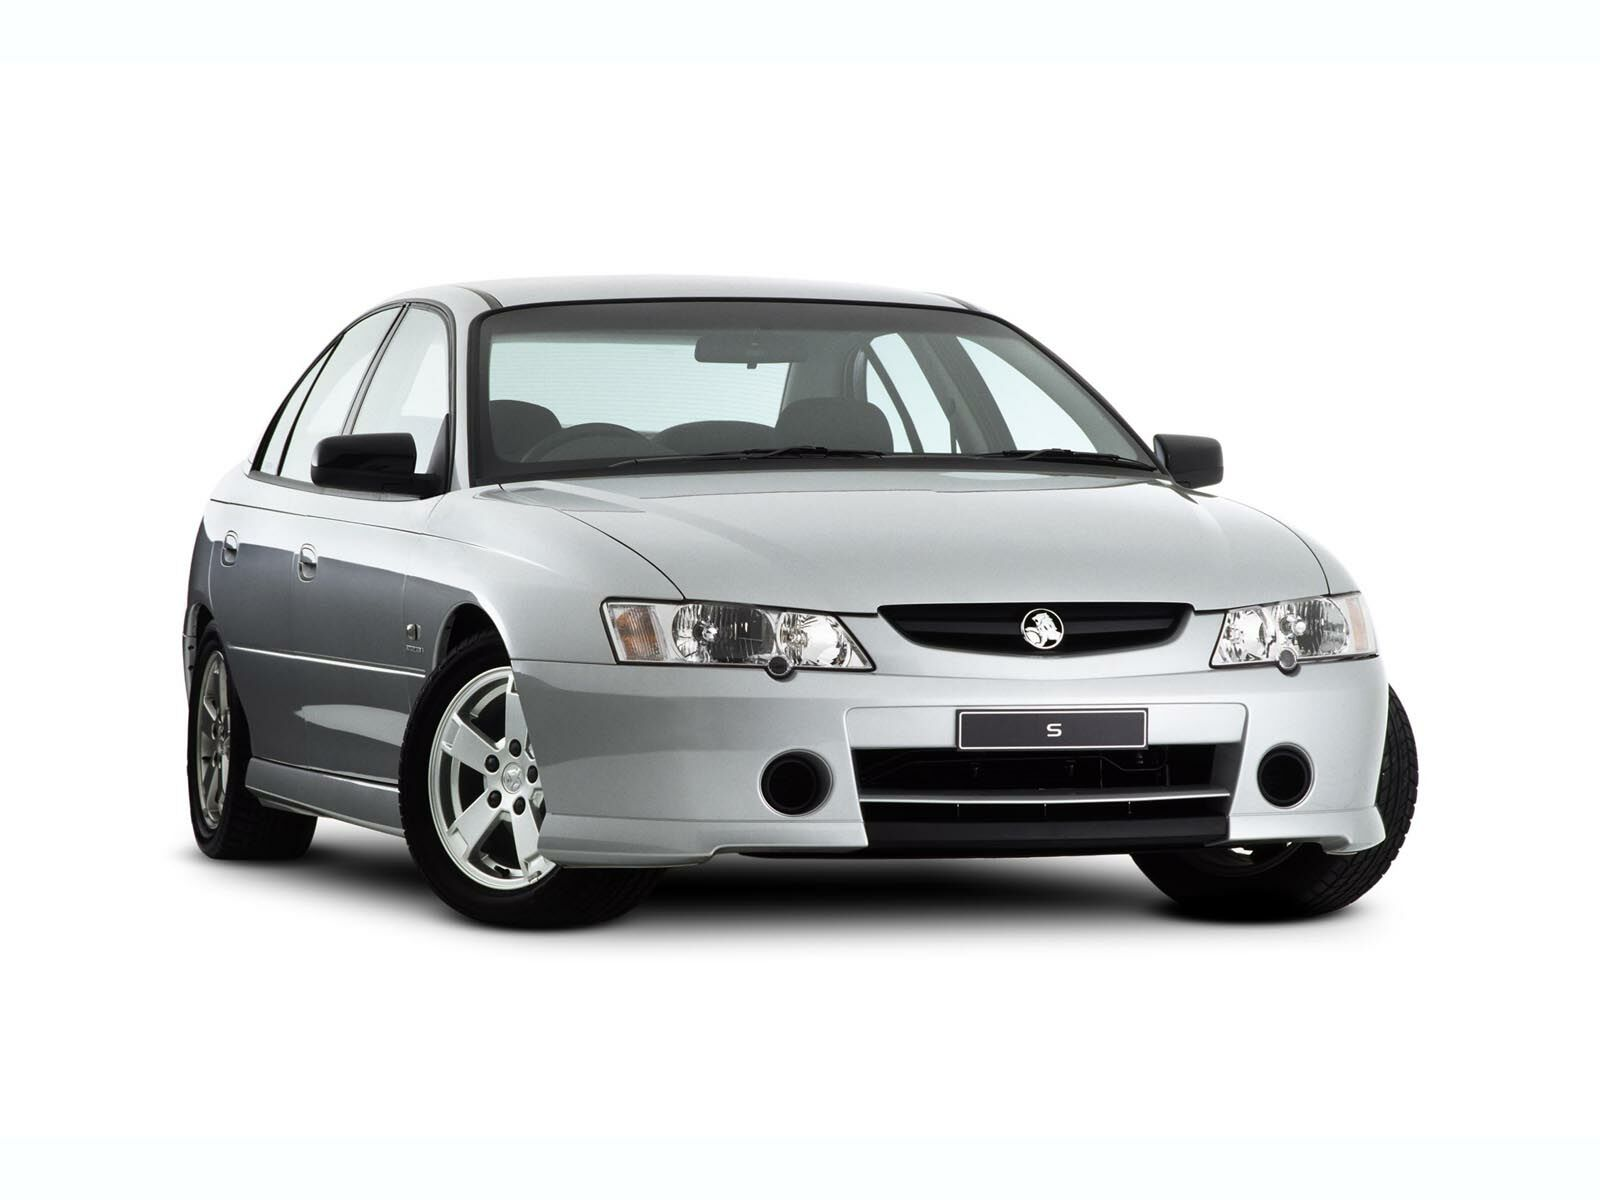 Holden Commodore S VY photo 81885